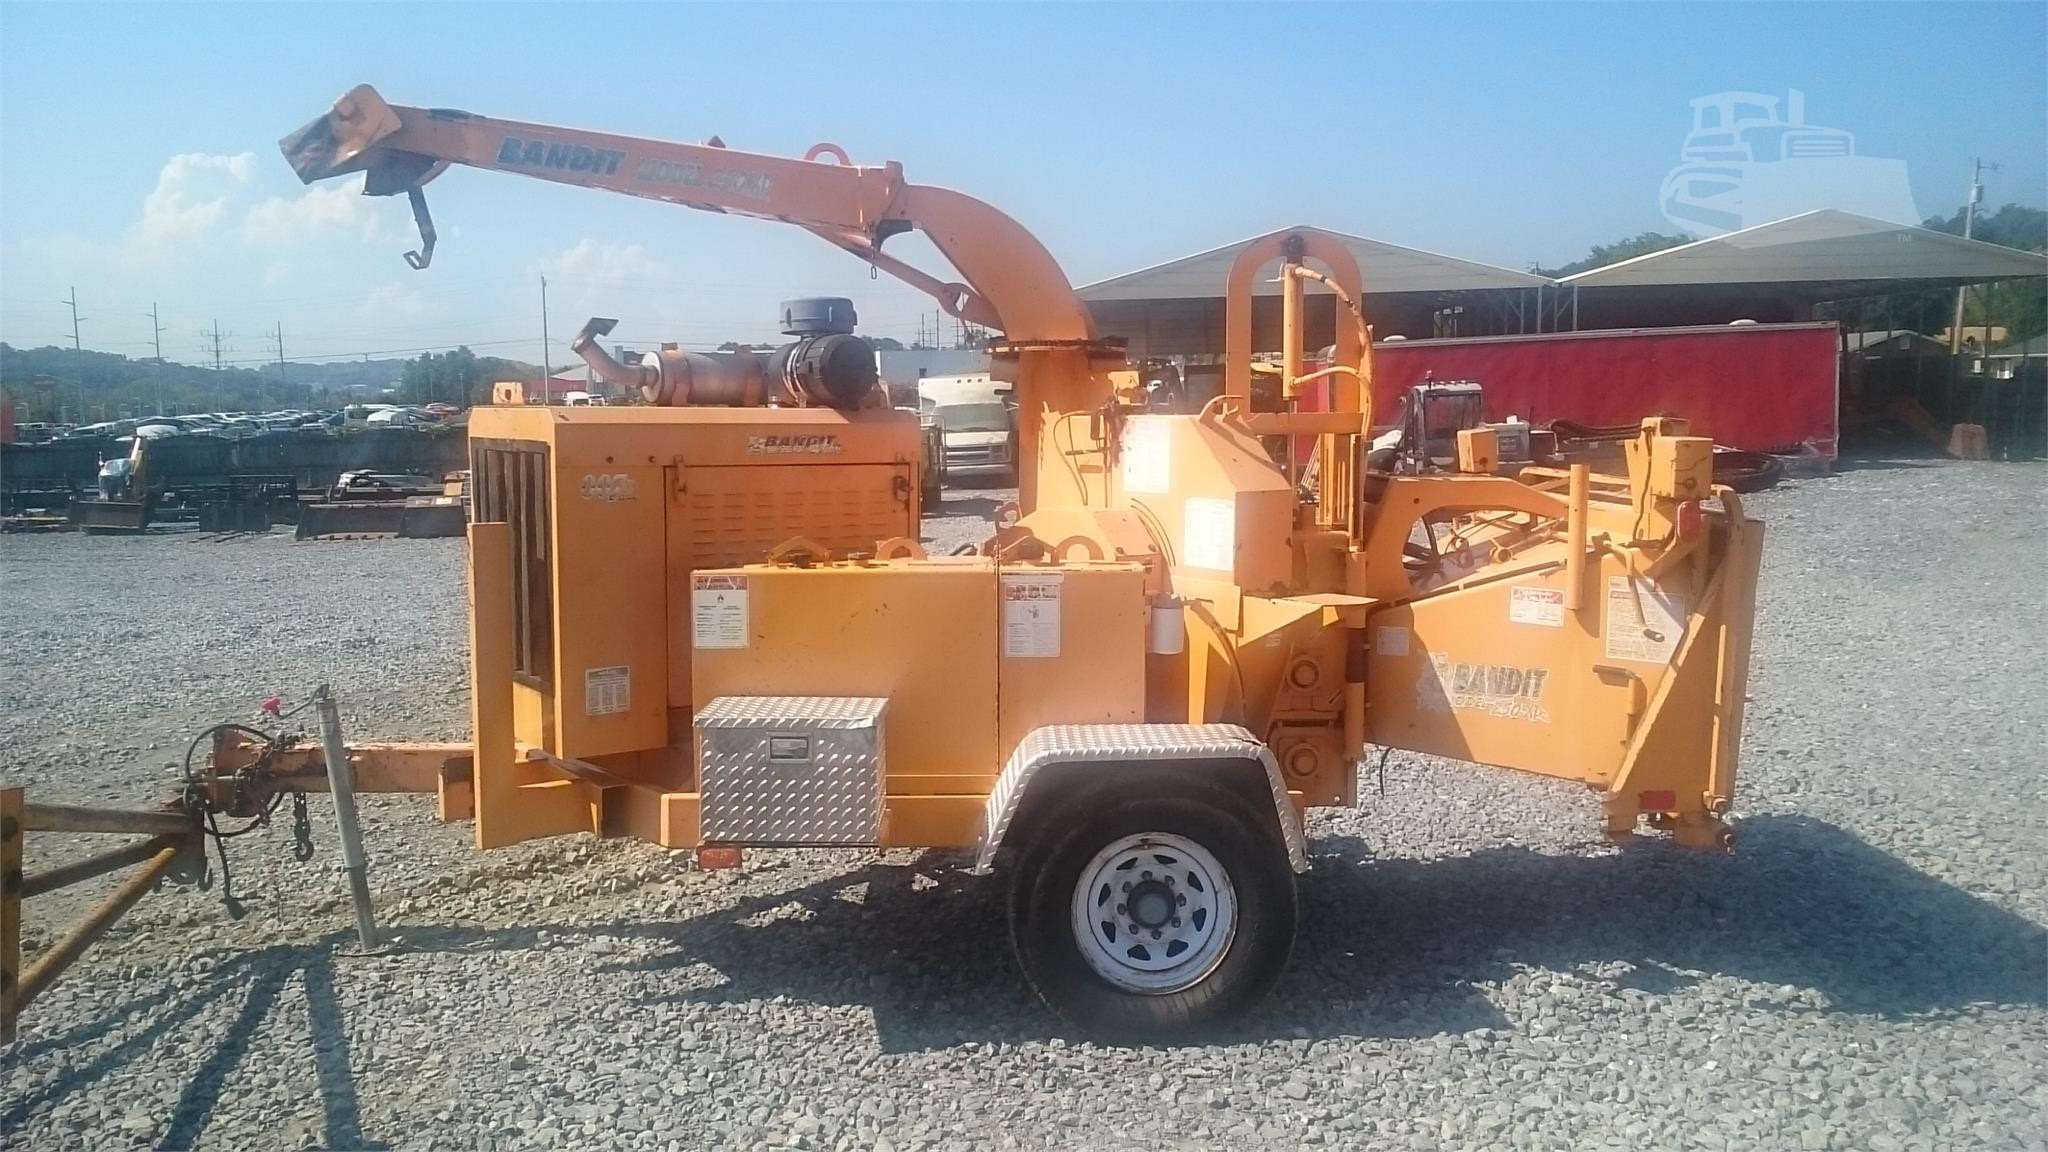 2007 BANDIT 250XP WOOD CHIPPER OWNED BY UTILITY COMPANY CAT 142 HP DIESEL 12 PULL BEHIND VERY